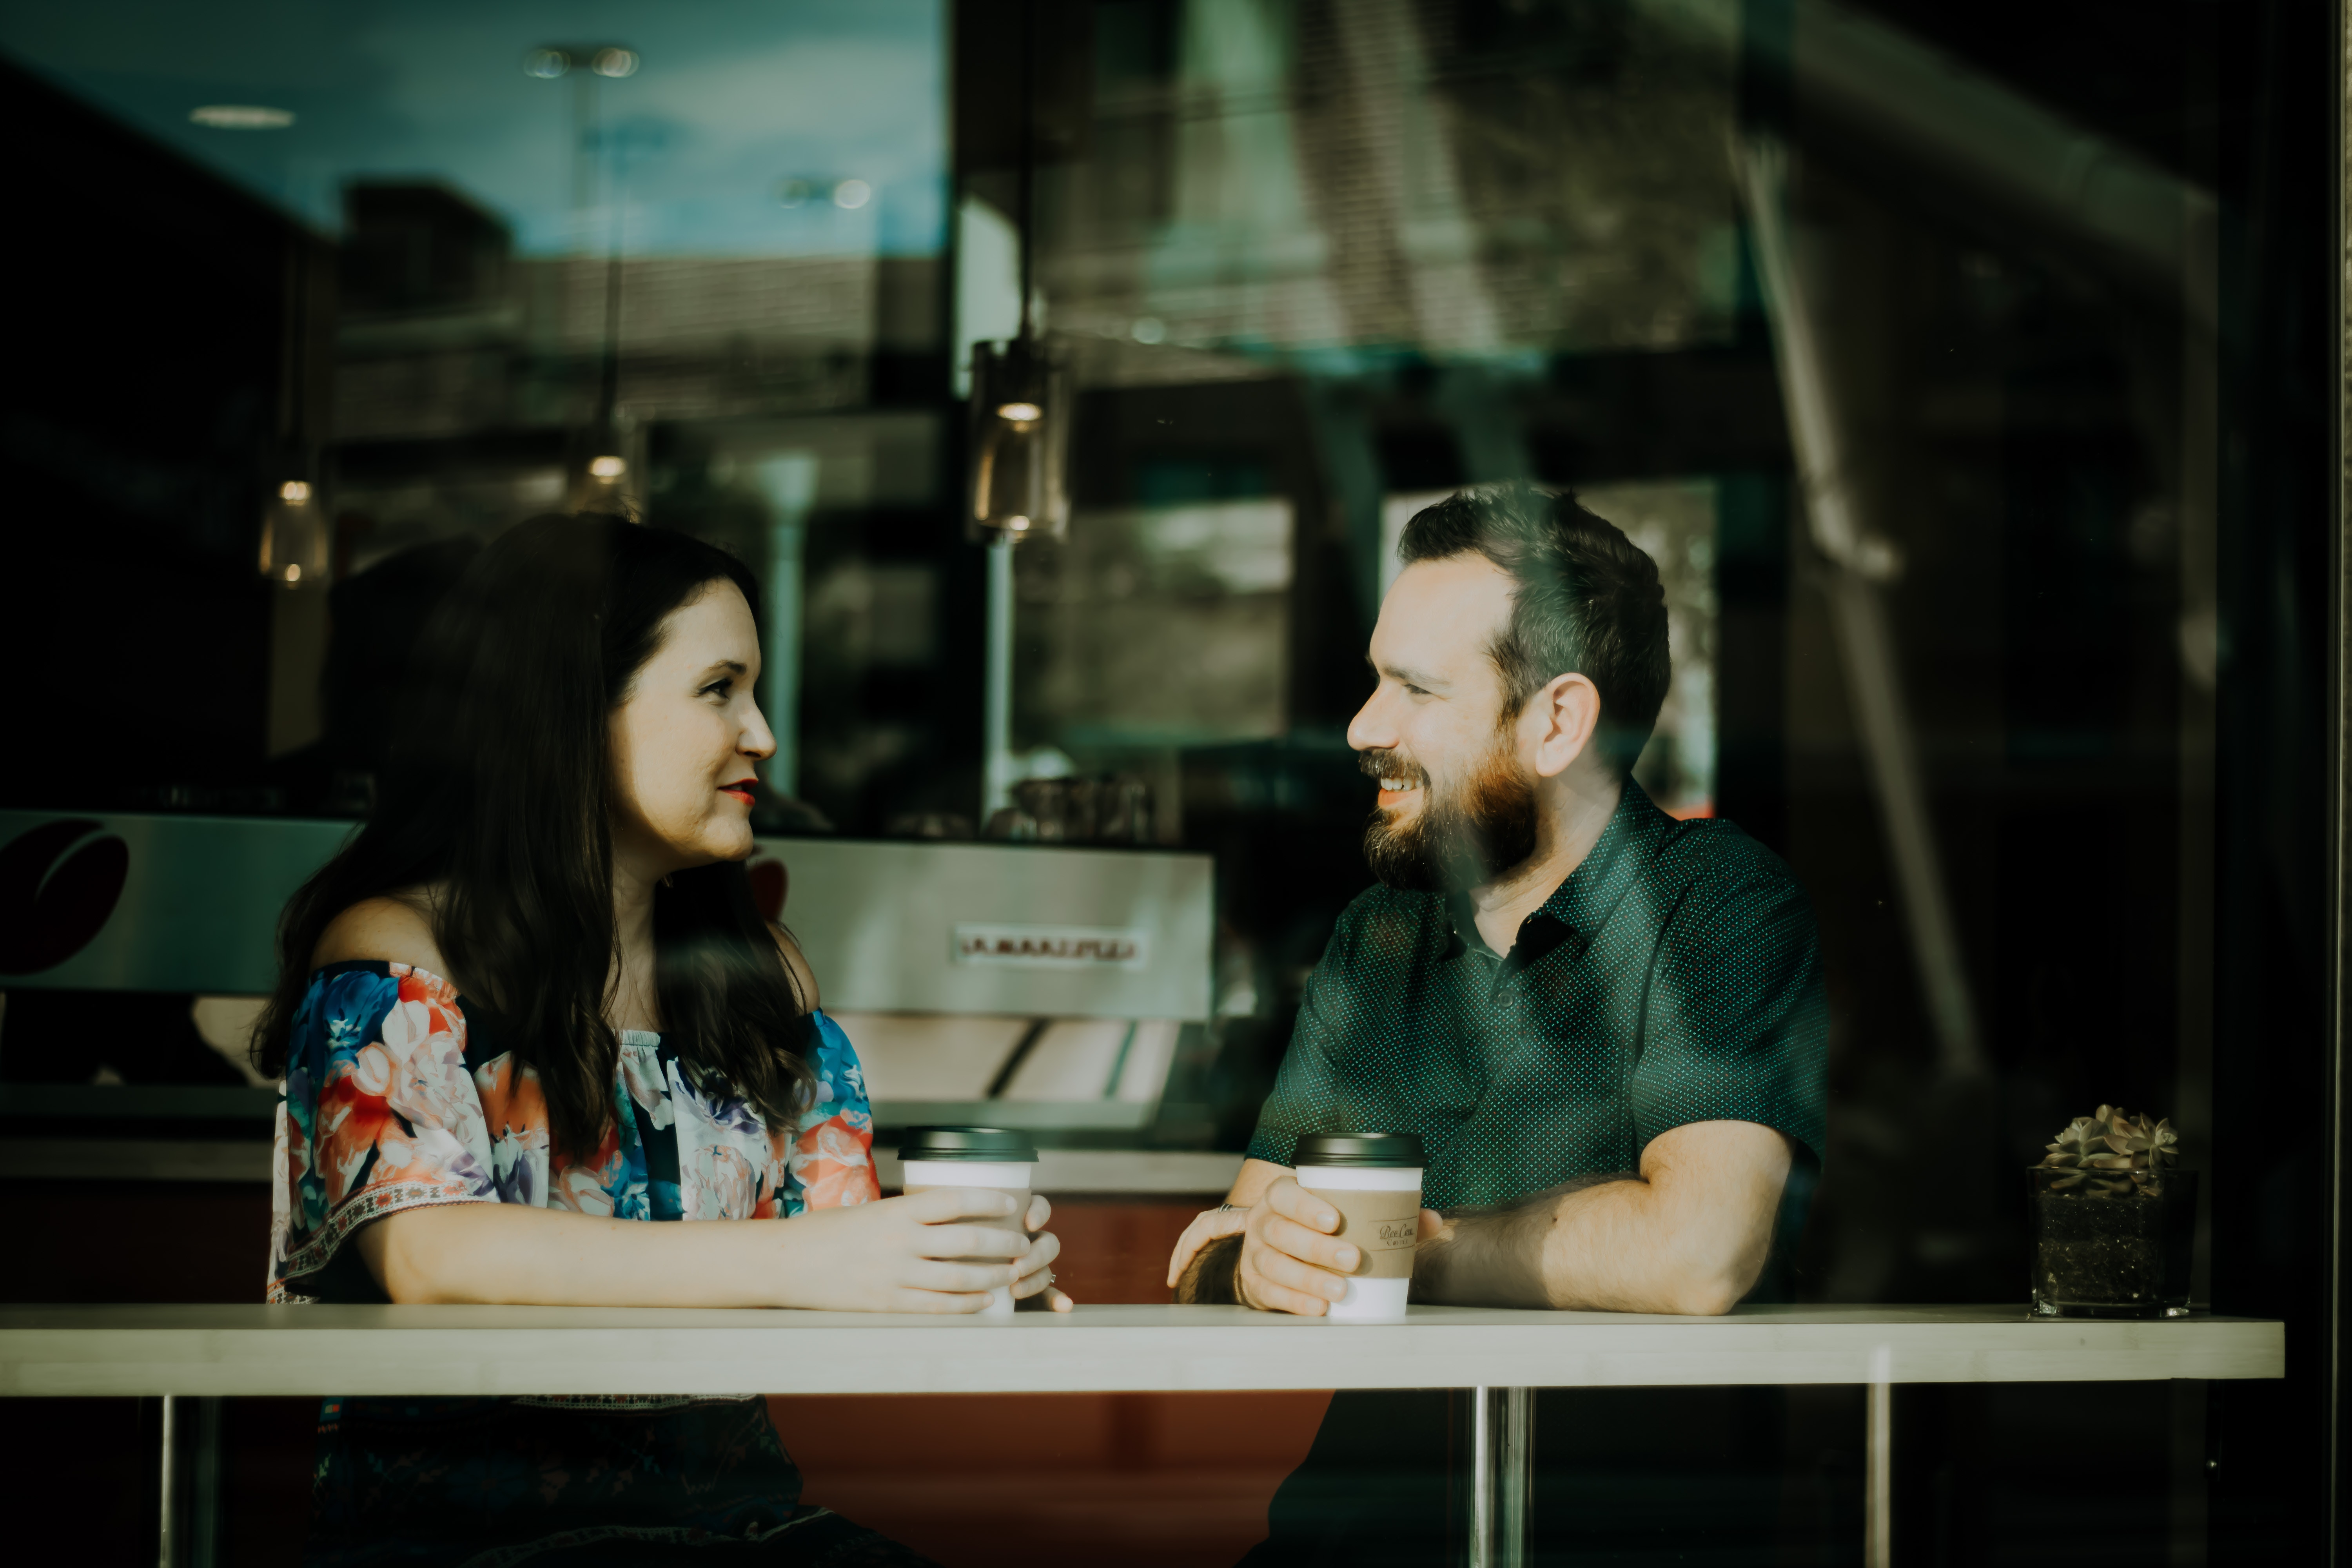 Pair of people talking over coffee